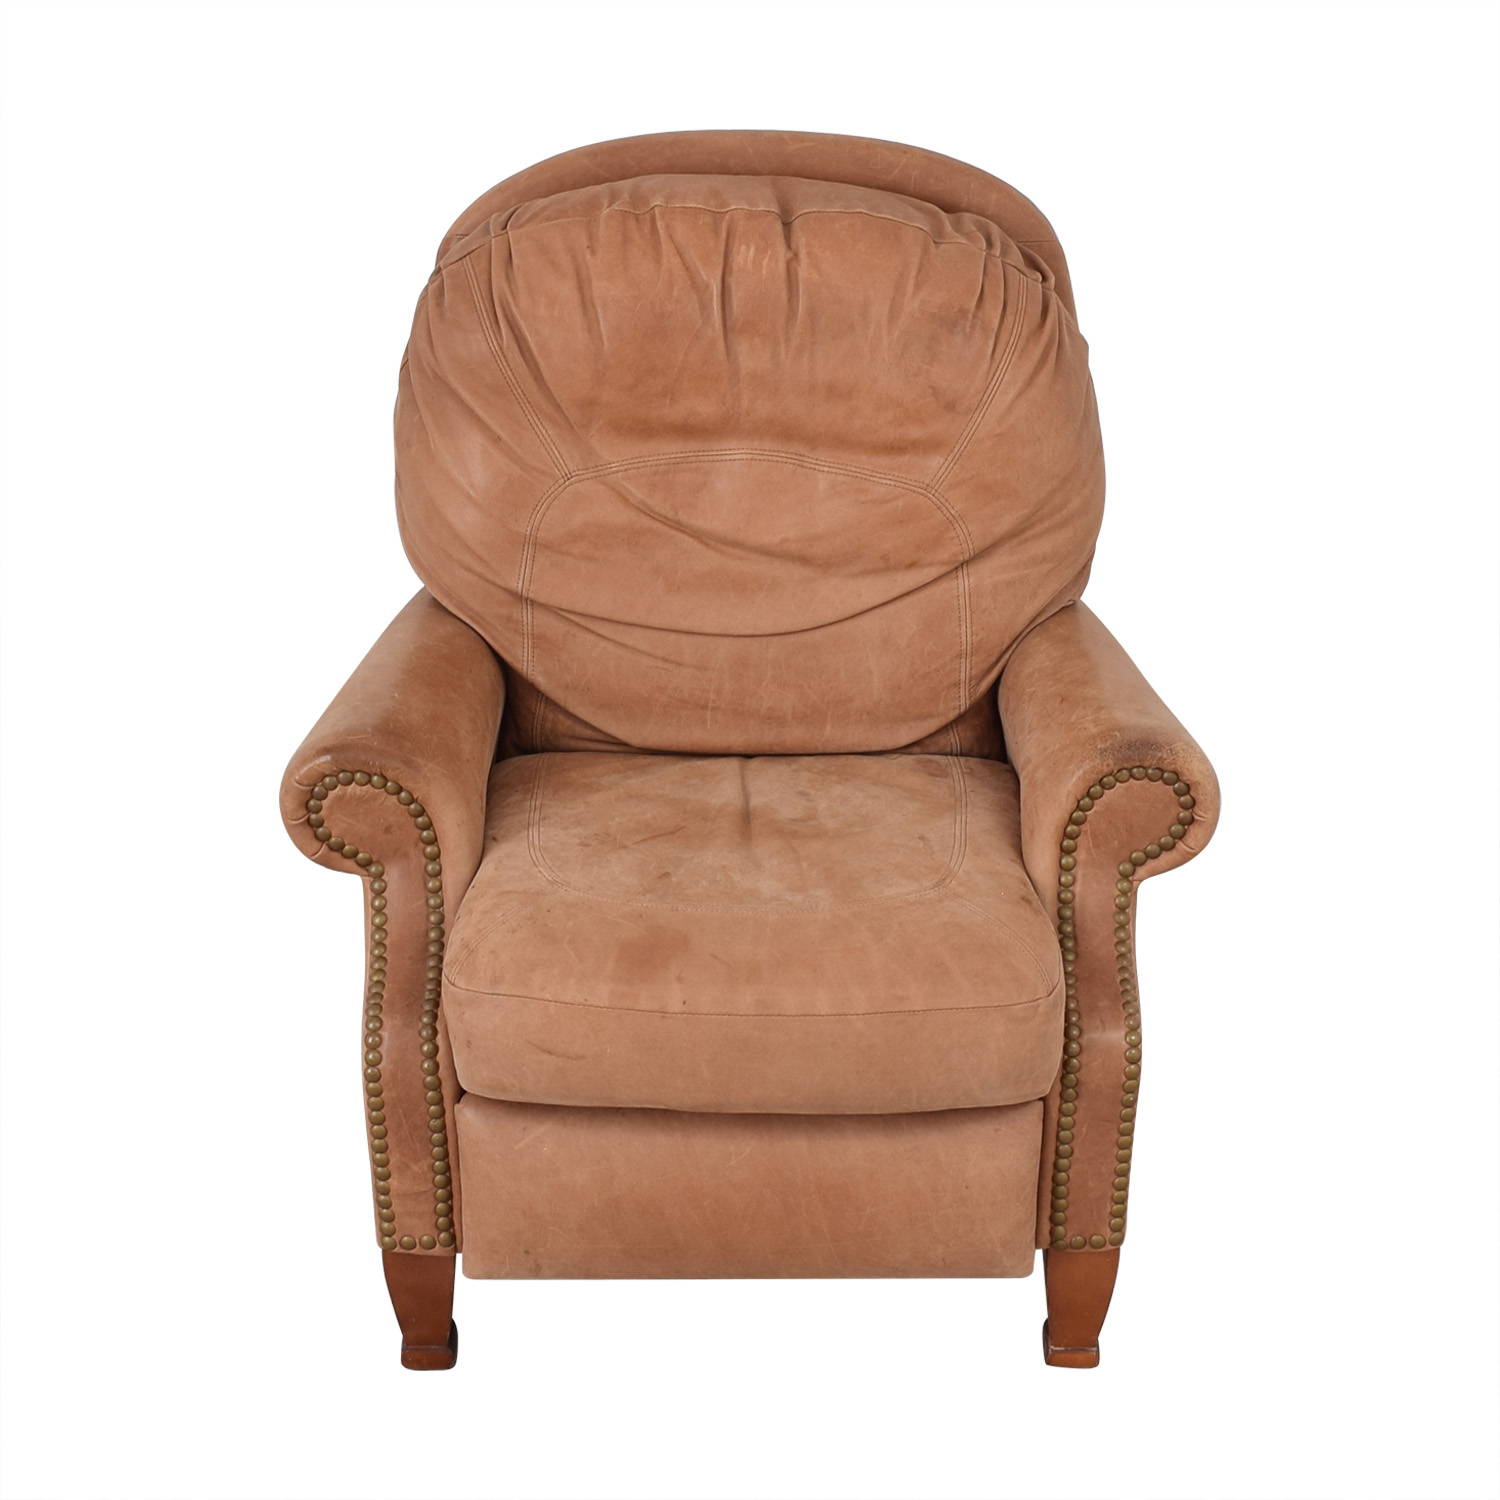 Distinctions Furniture Distinction Leather Classic Recliner for sale